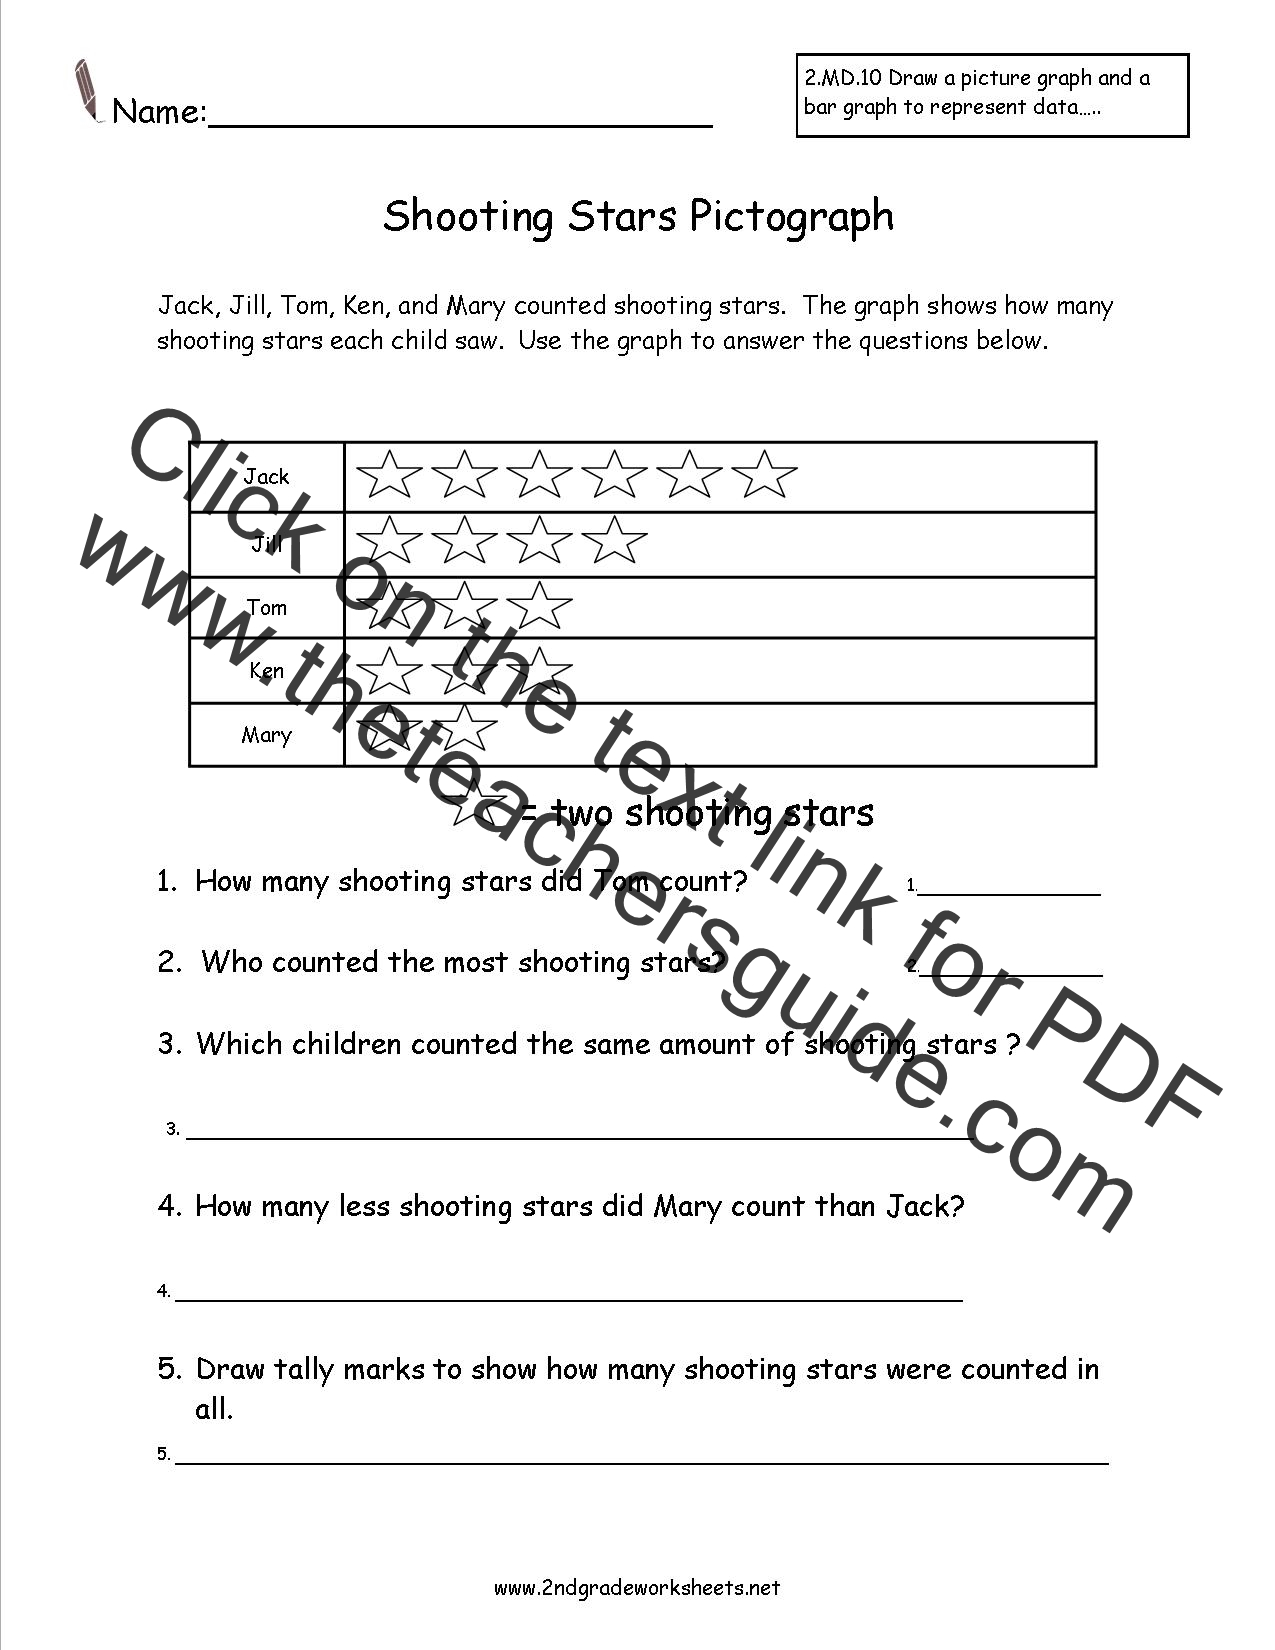 Worksheets 3rd Grade Science Worksheets second grade reading and creating pictograph worksheets shooting stars worksheet